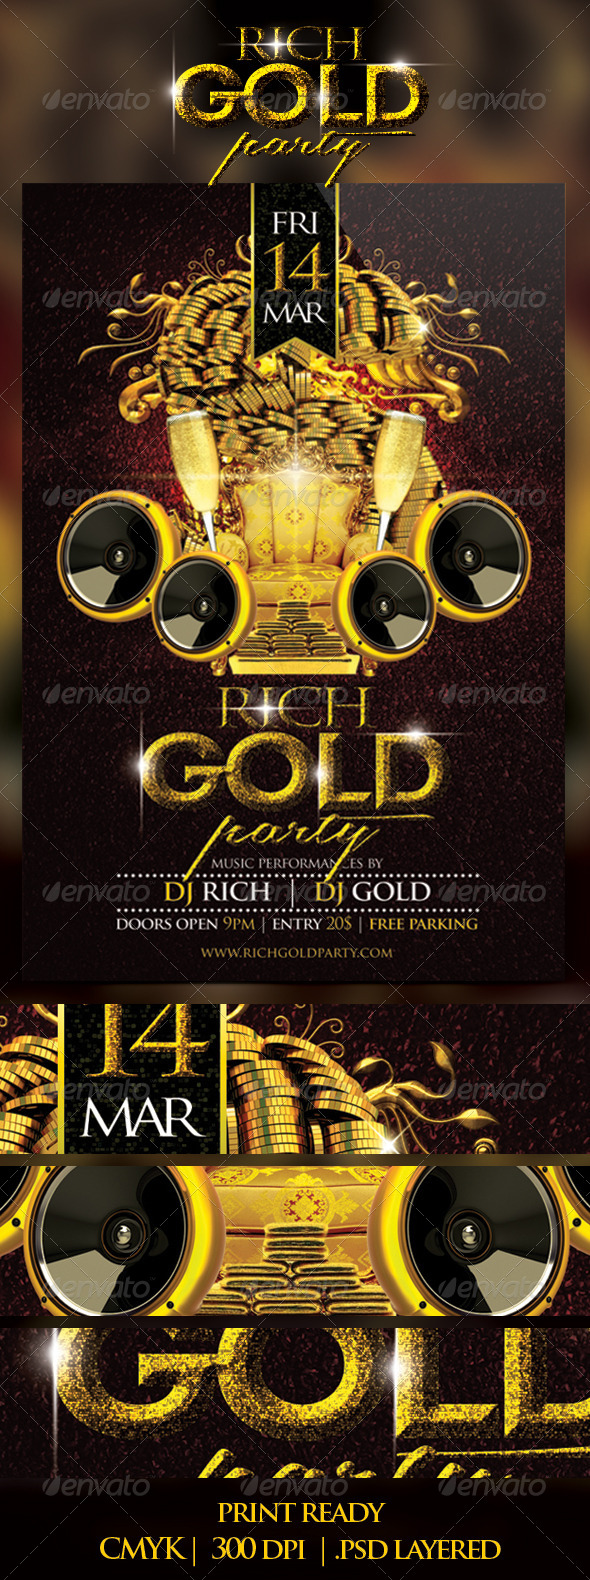 Rich Gold Party Flyer - Clubs & Parties Events